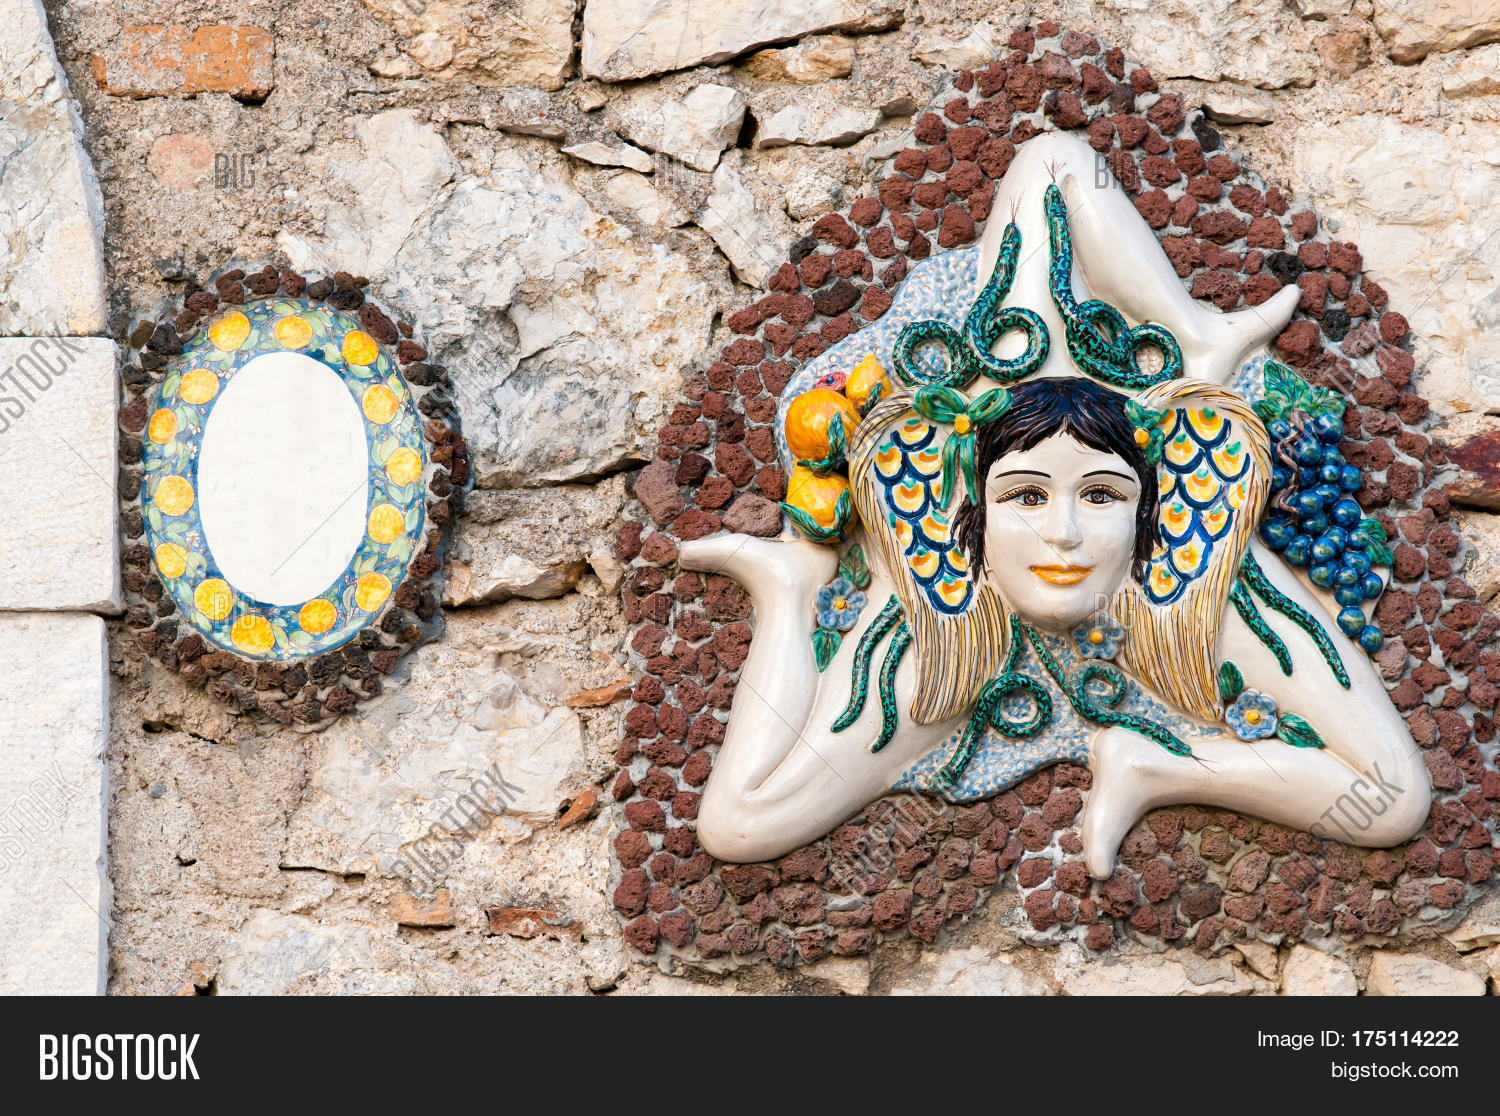 Typical Ceramic Image Photo Free Trial Bigstock